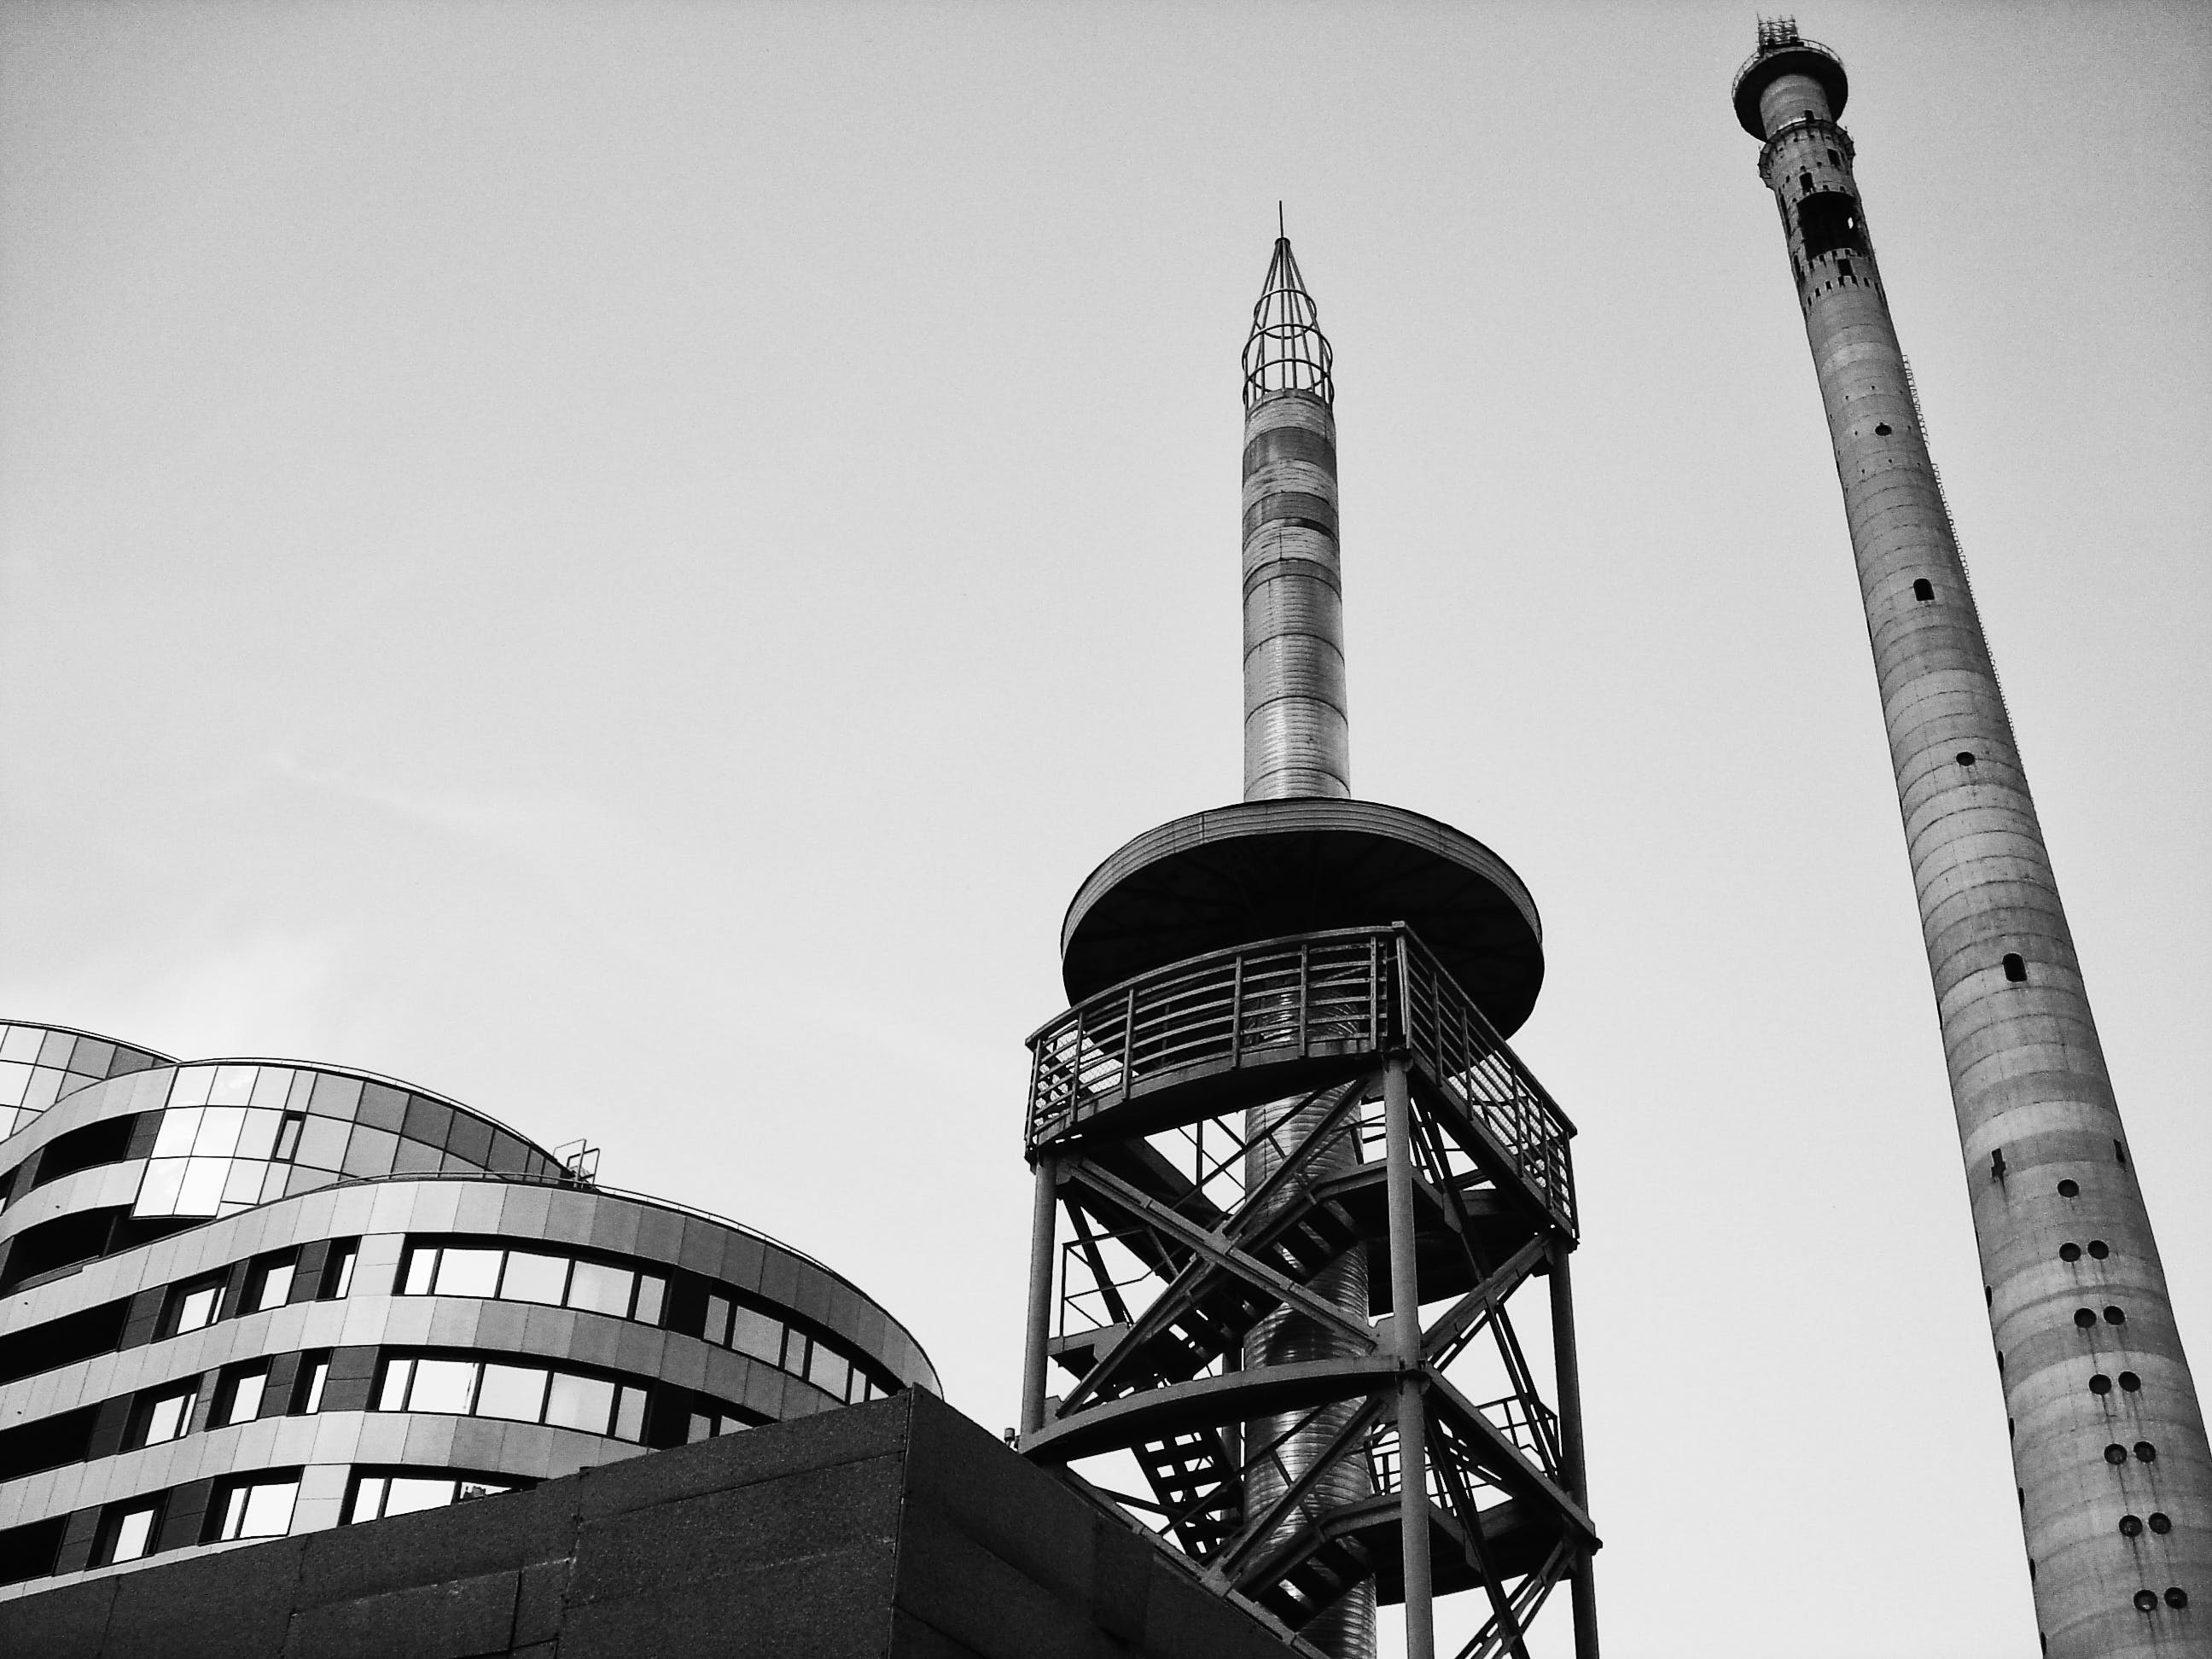 Grayscale Photograph of High-rise Tower